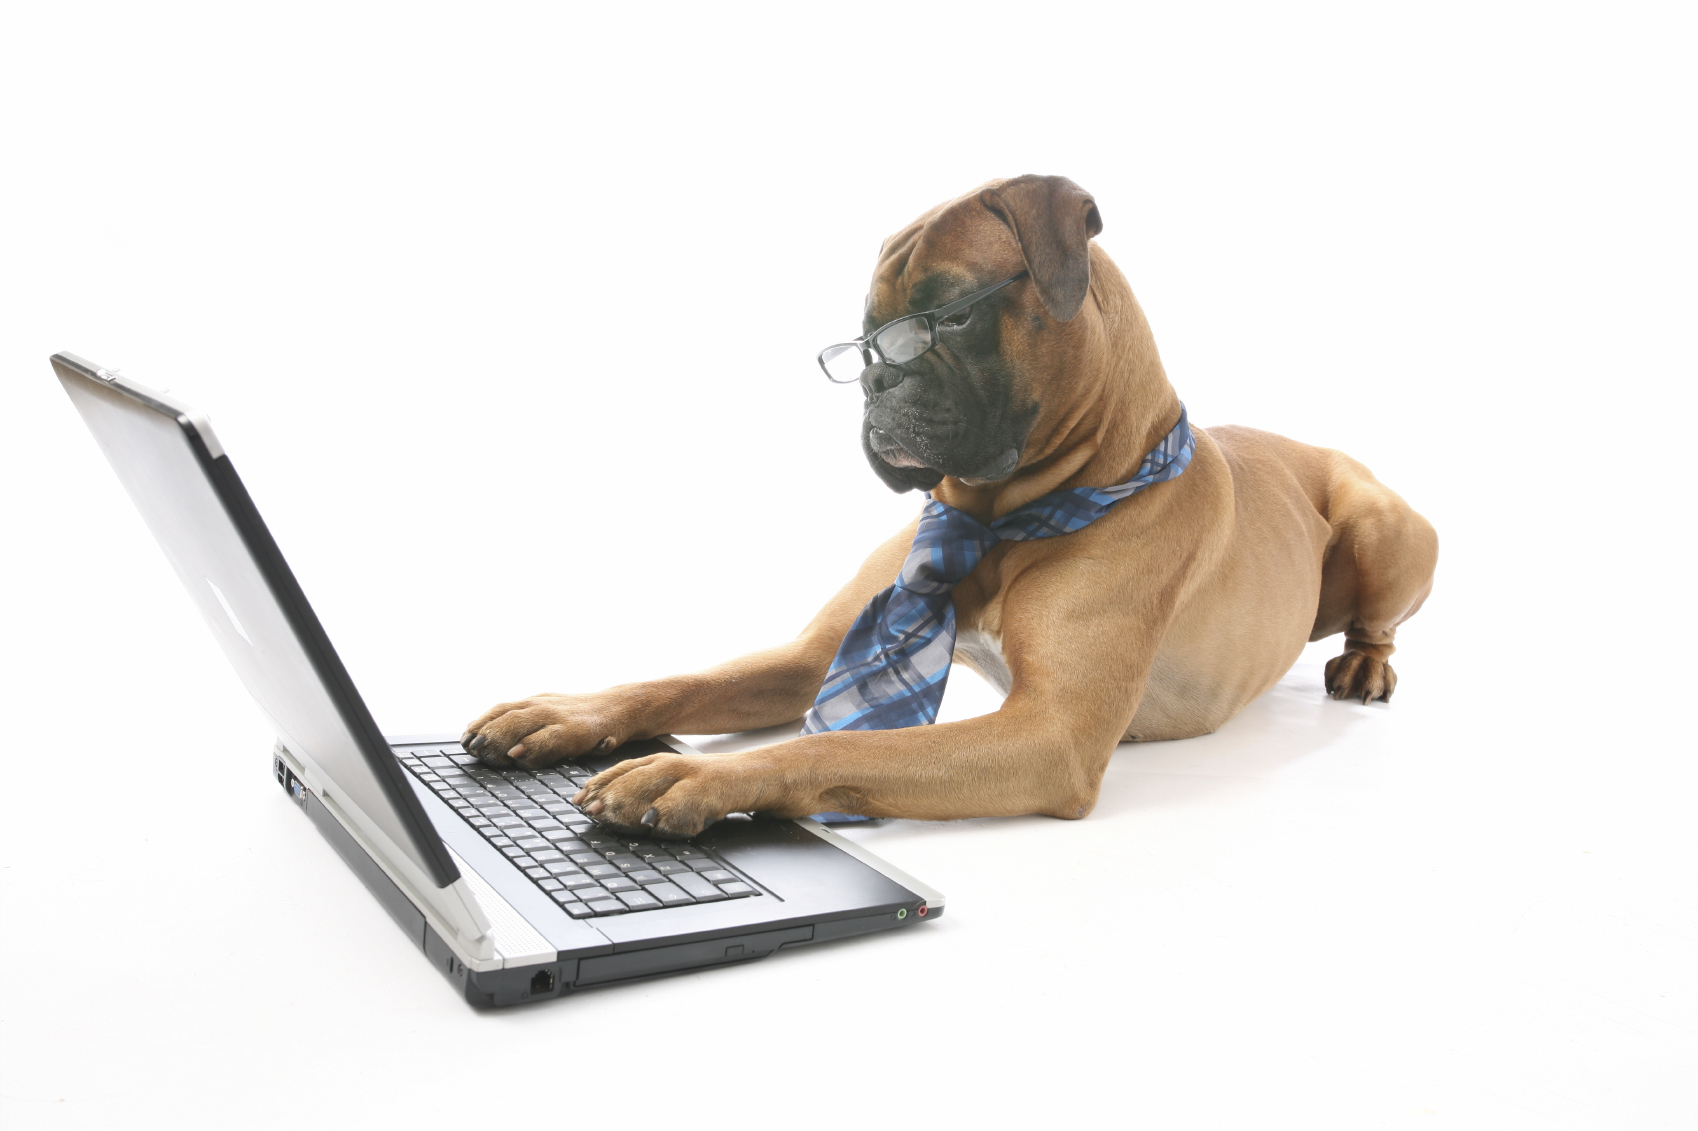 essay dog pet animal Nyu admission essay hugh gallagher essay on my favorite pet animal dog tips on writing a persuasive essay essay on my grandparents for class 1.